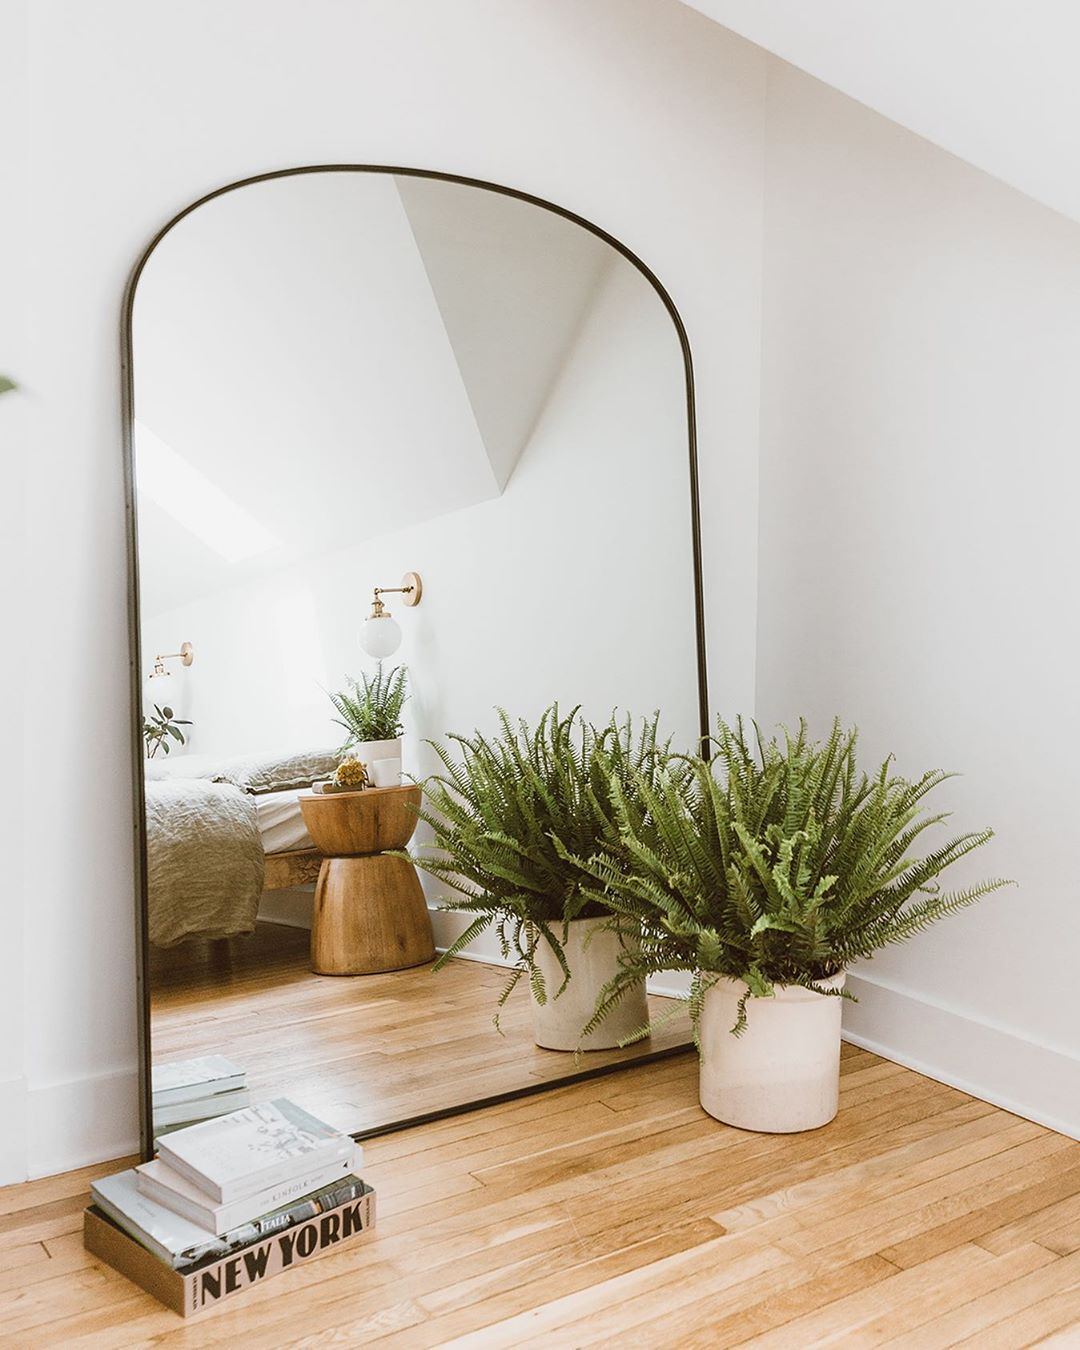 3 884 Likes 83 Comments Christine Higgs Forthehome On Instagram Rejuvenation Is Really Good Mirror Dining Room Floor Mirror Living Room Floor Mirror